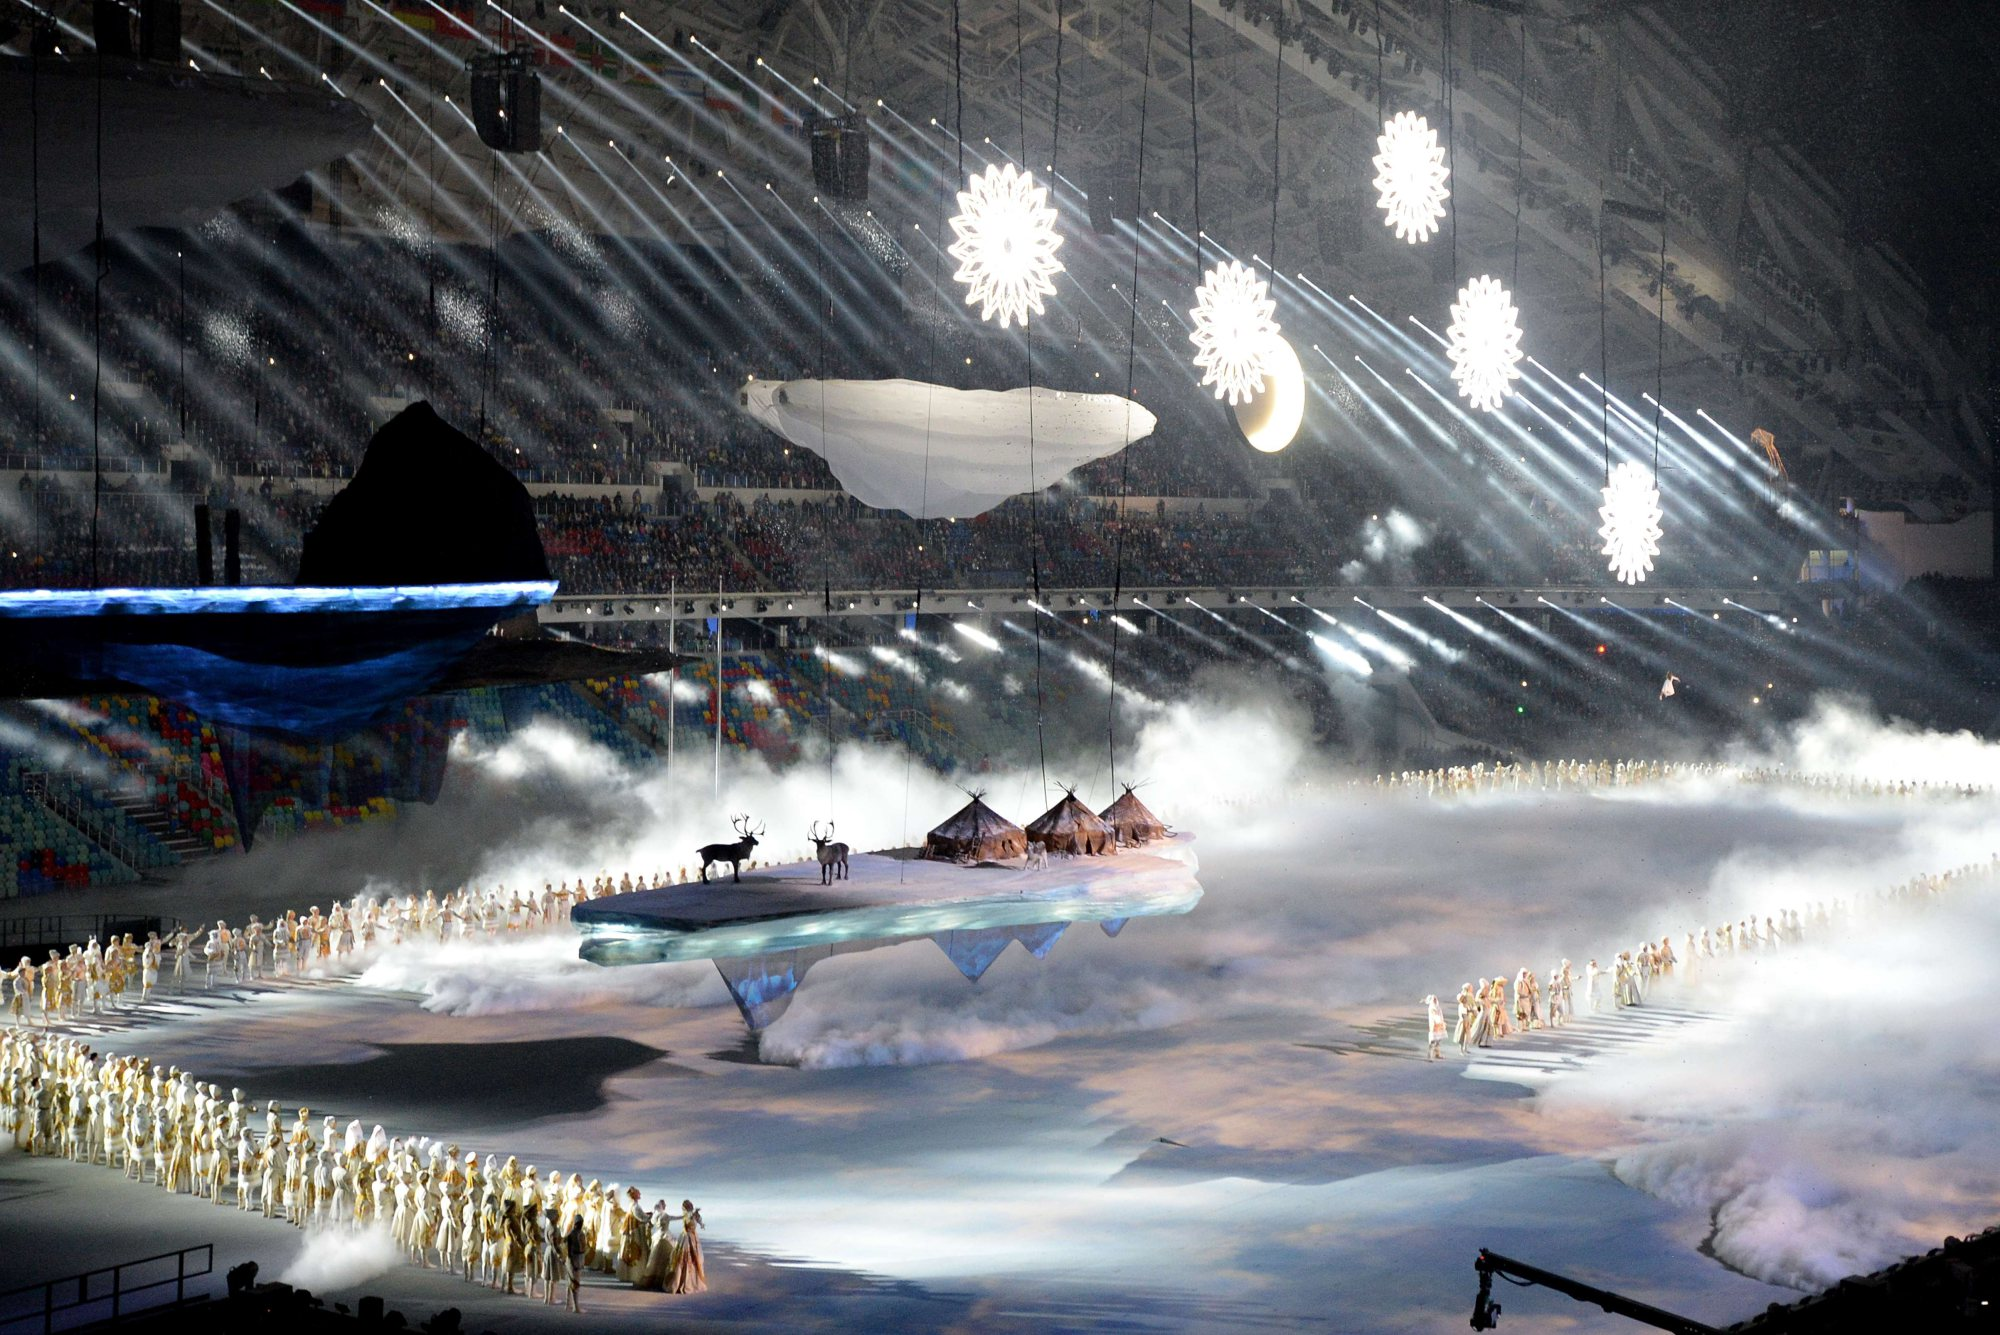 A scene showing the heritage of Russia is portrayed during the Opening Ceremony.